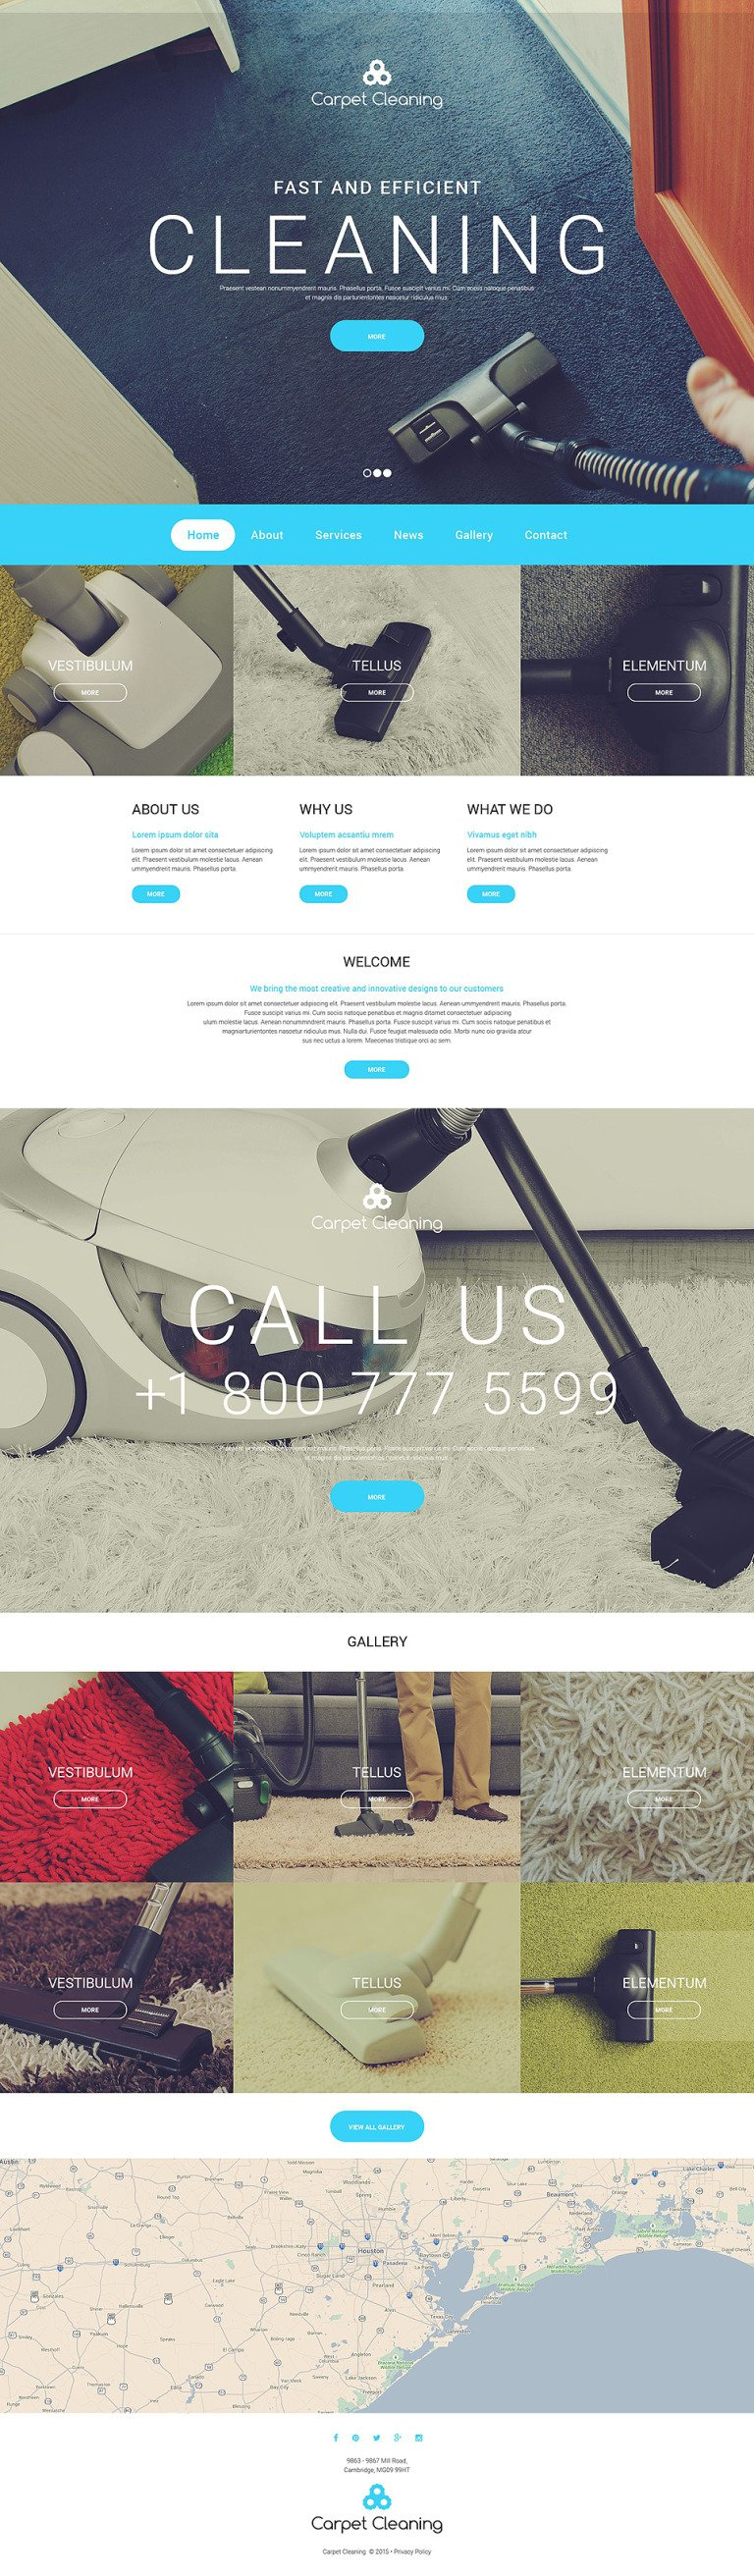 Carpet Cleaning Website Template New Screenshots BIG